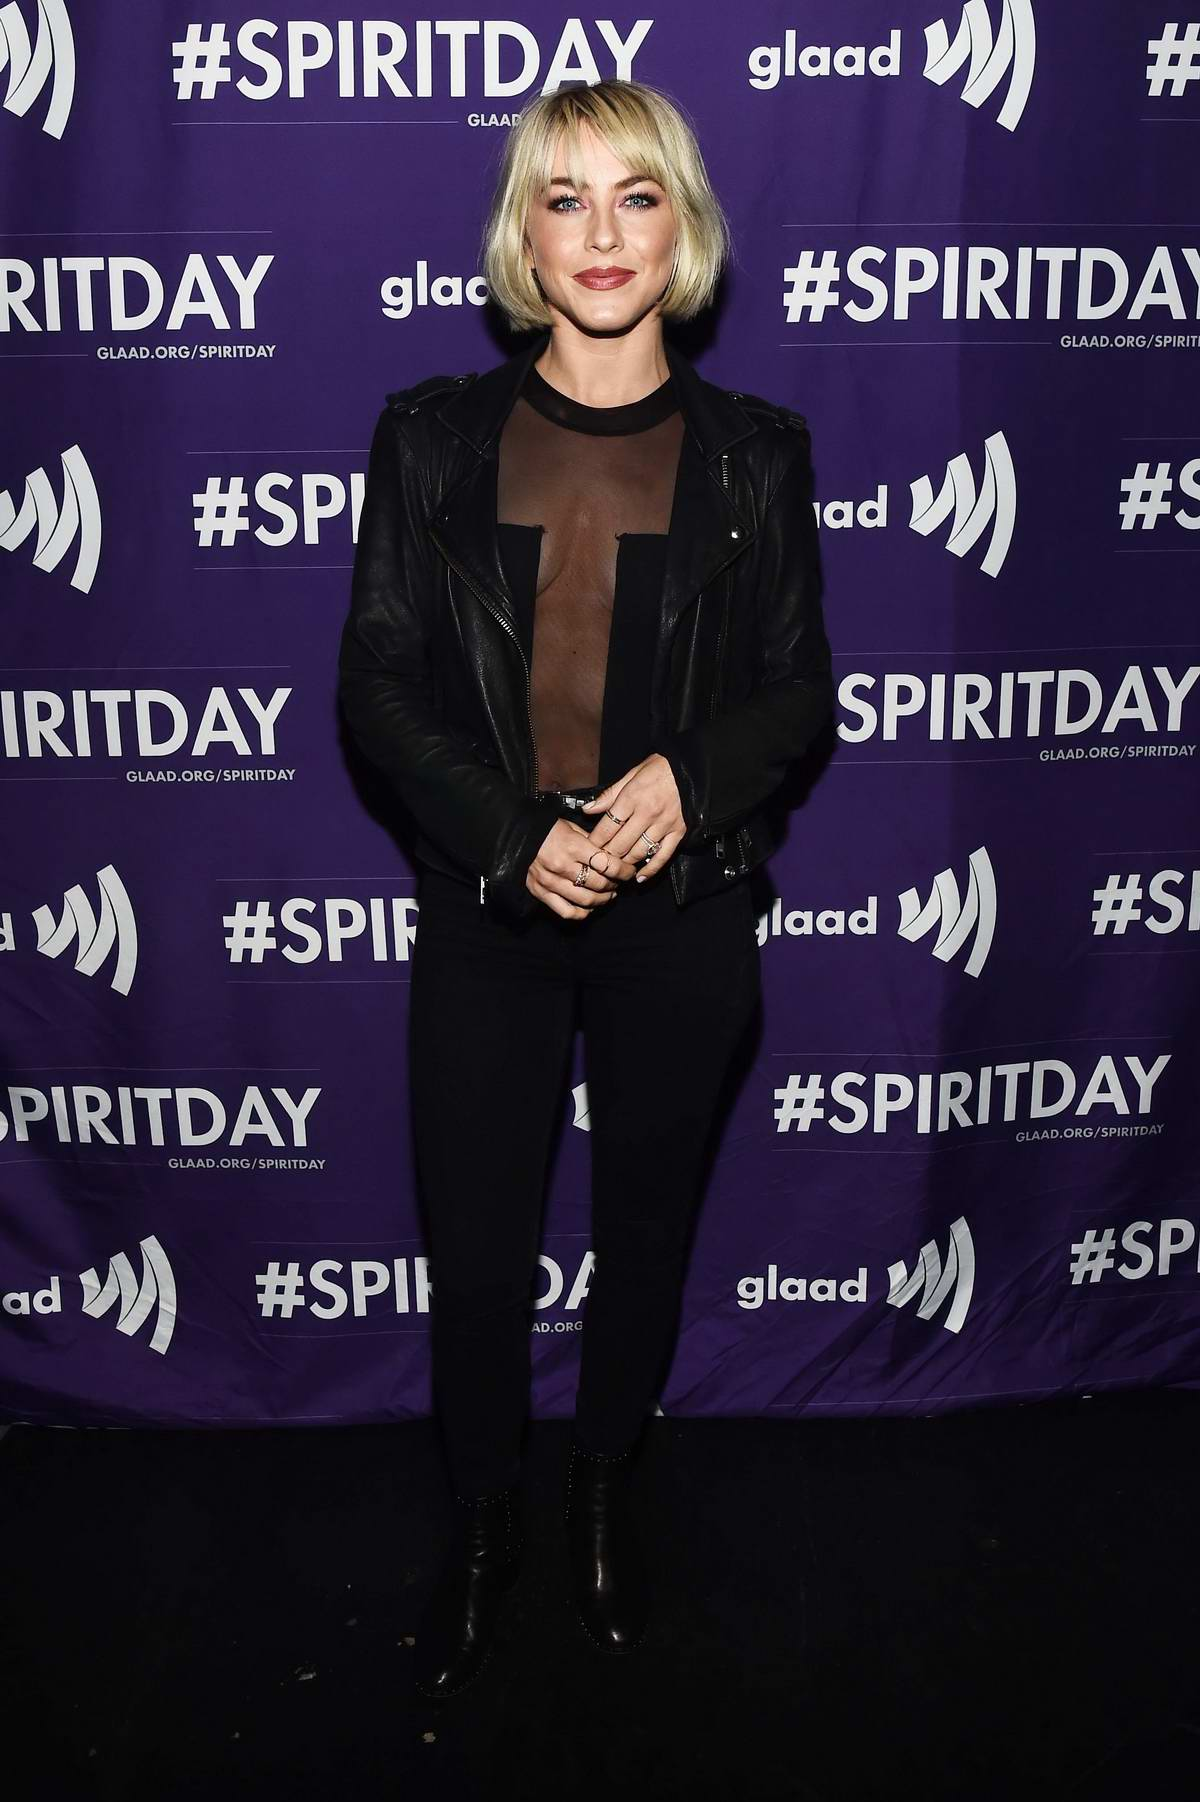 Julianne Hough attends GLAAD Present 'BEYOND' Spirit Day Concert in Hollywood, Los Angeles